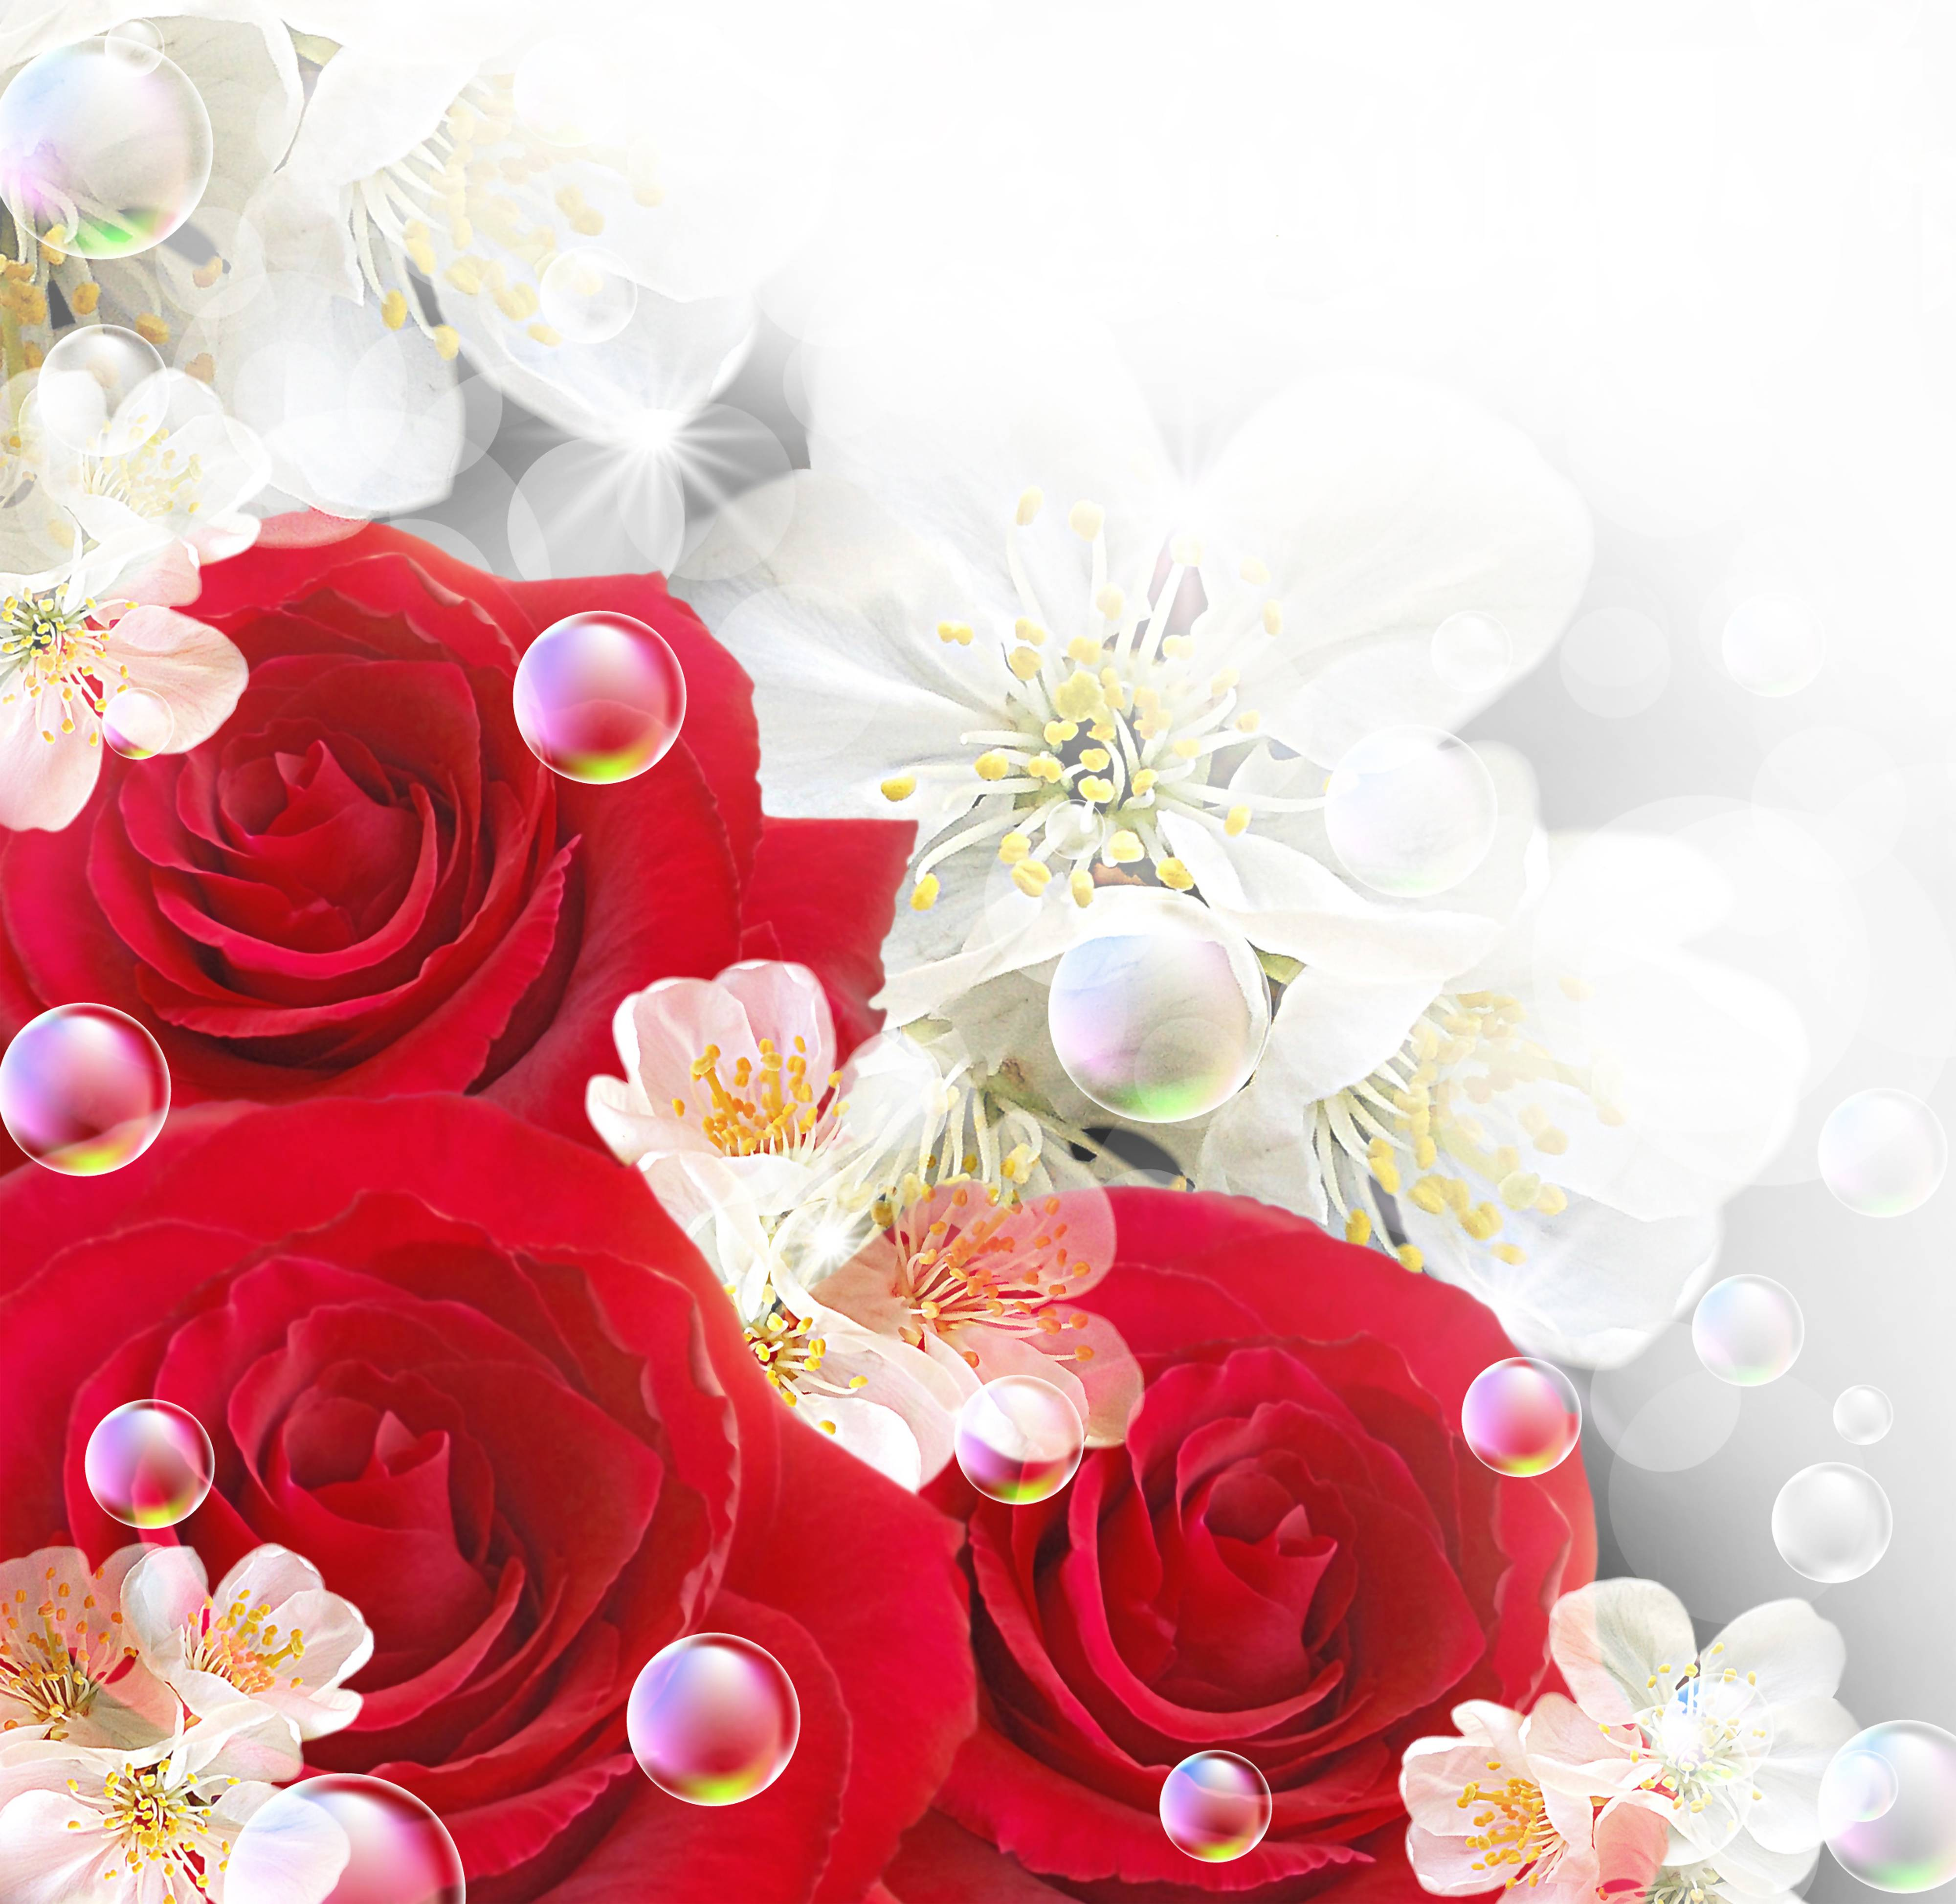 Red Roses With White Backgrounds